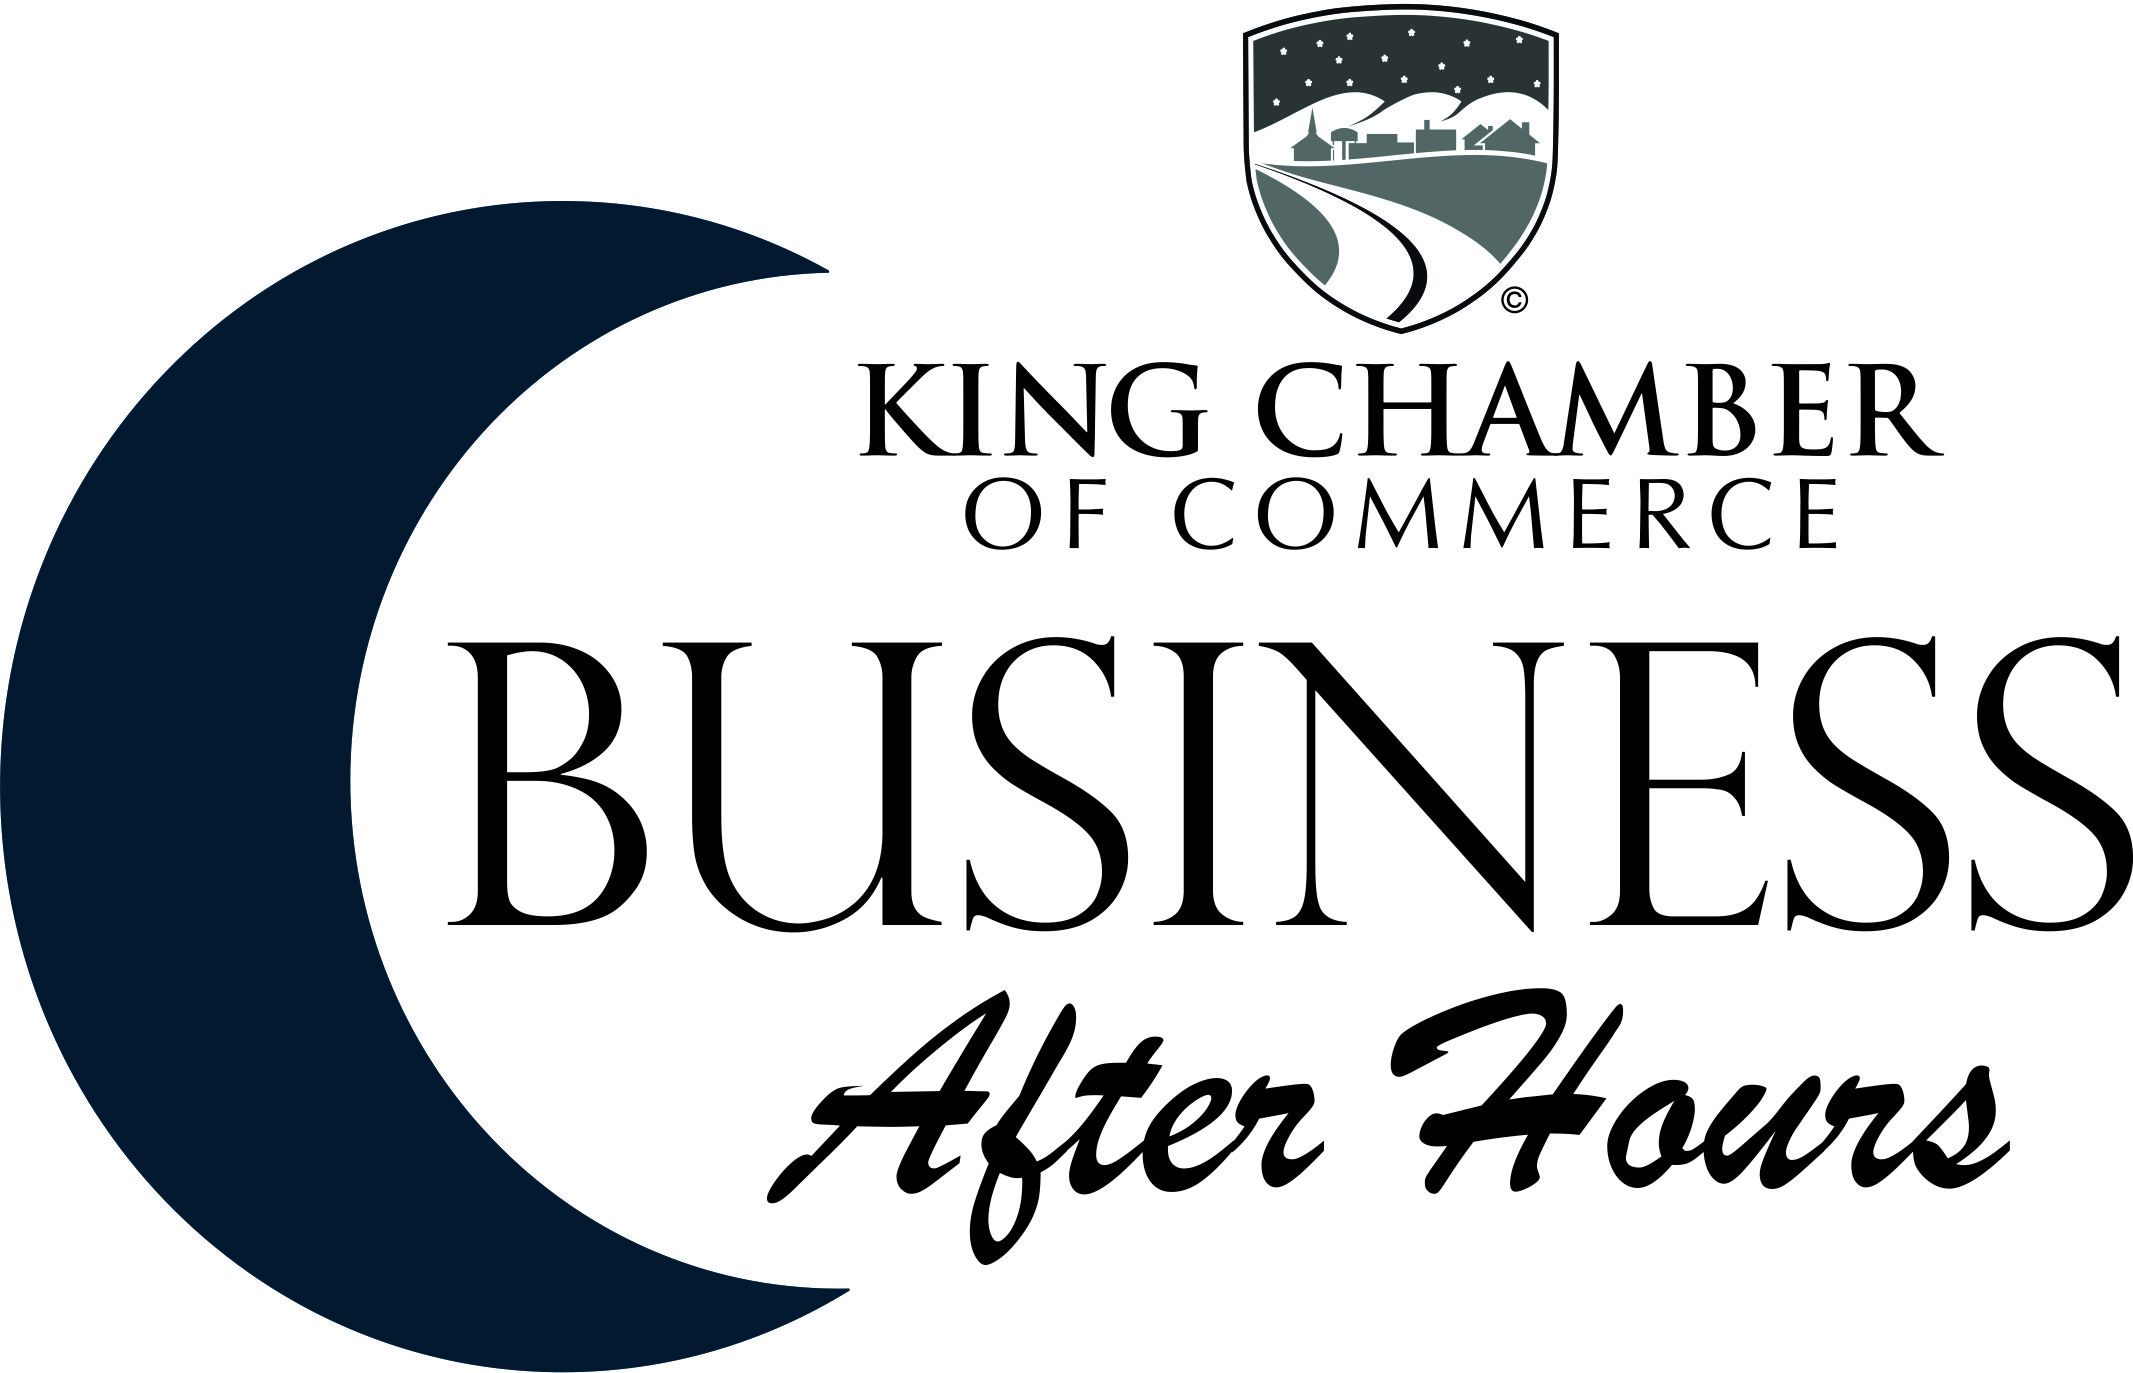 King Chamber Business Before Hours